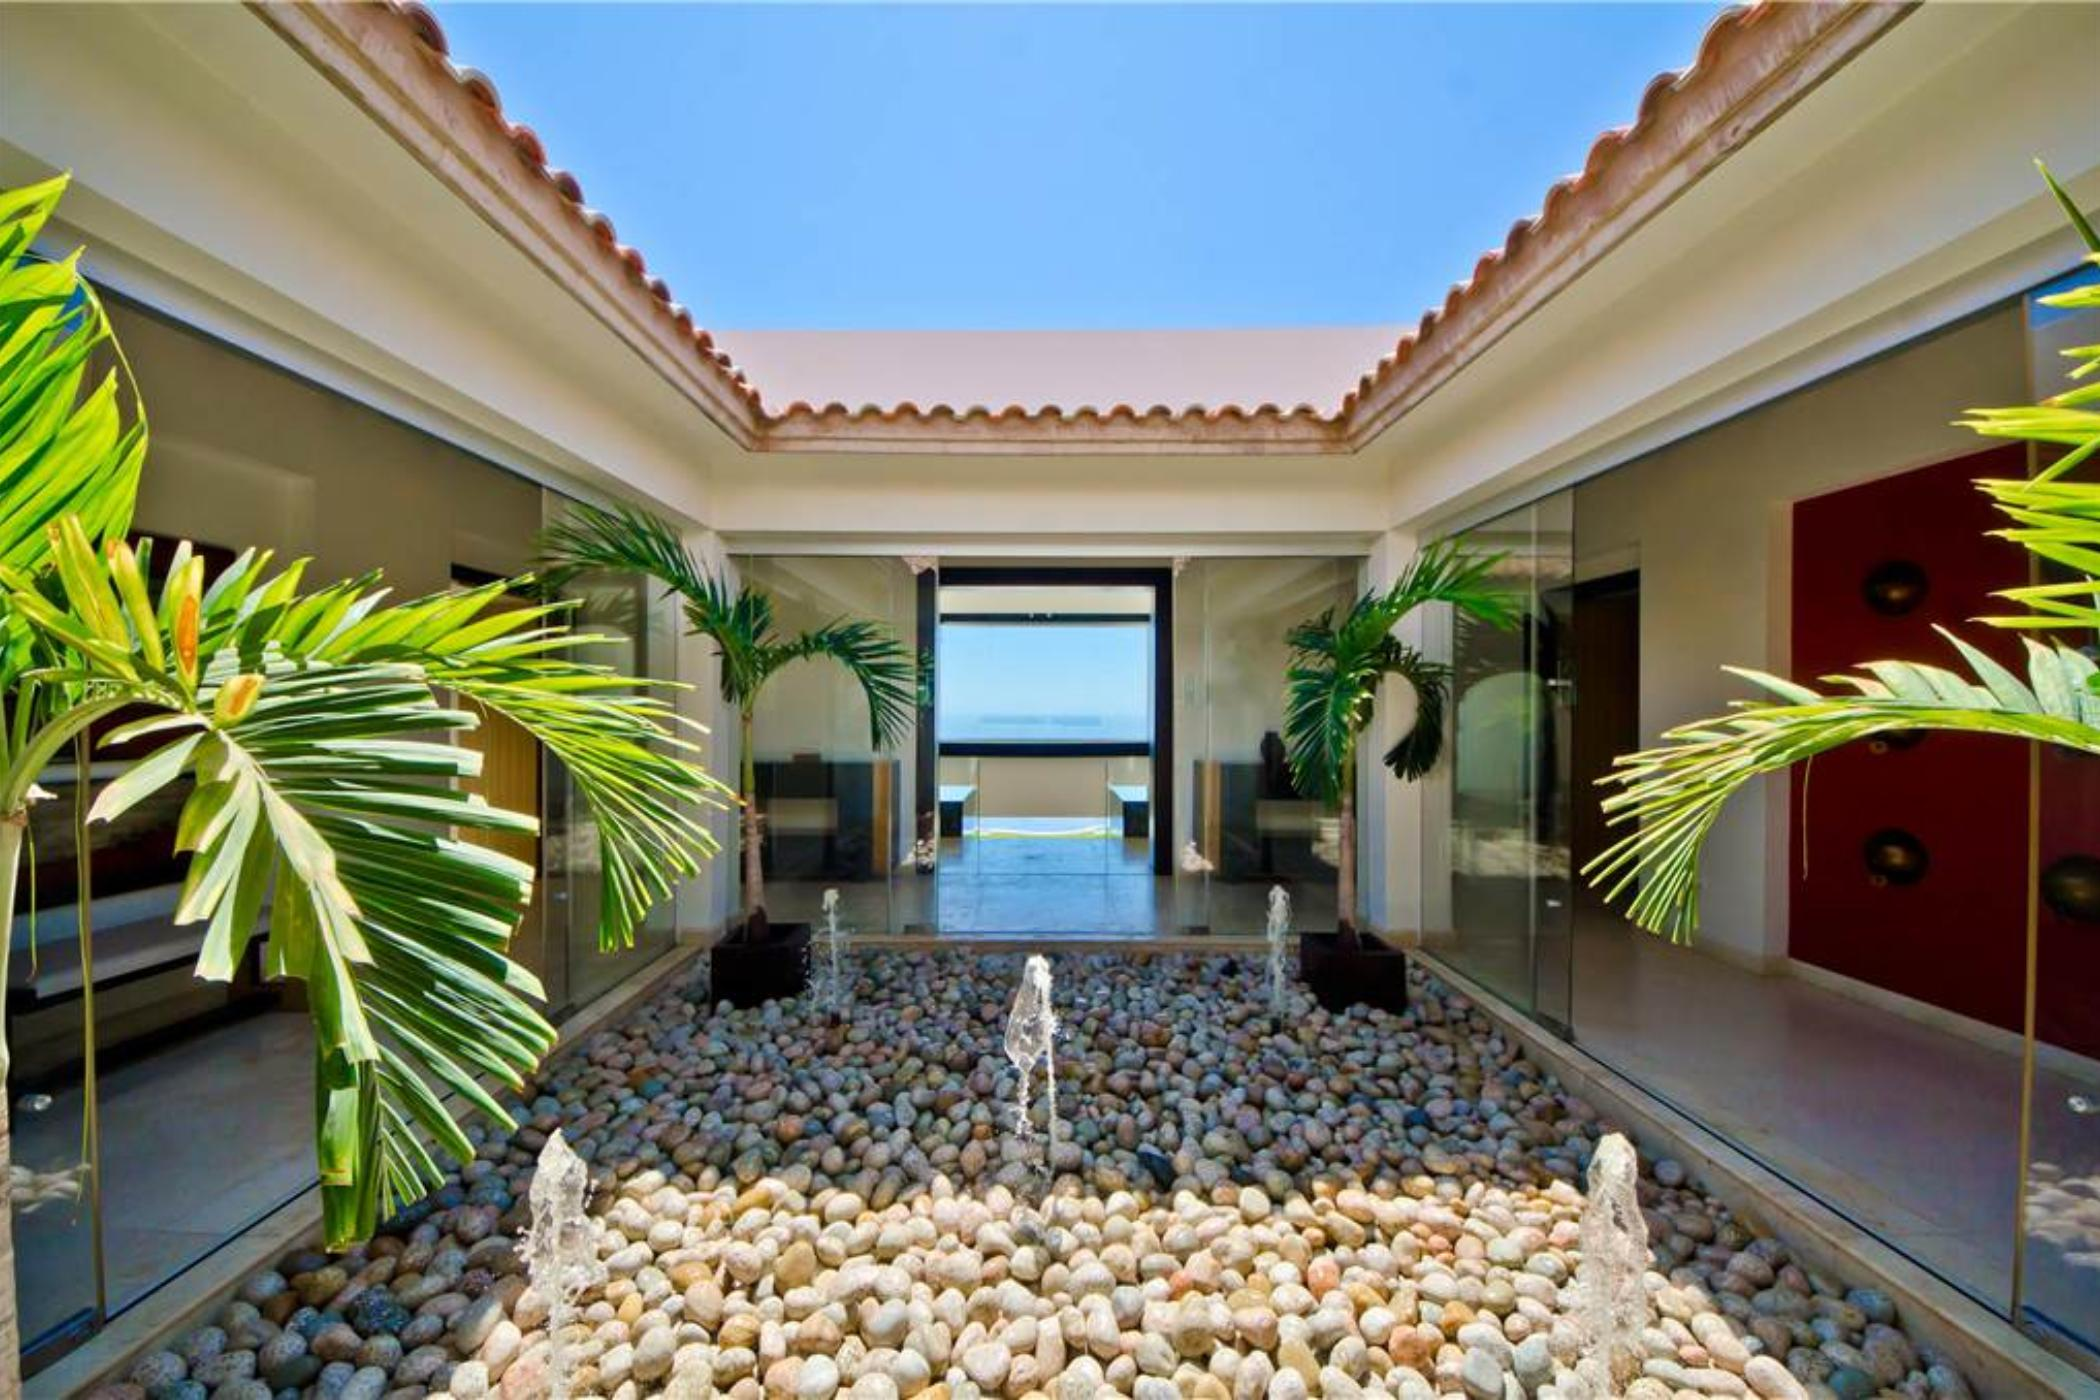 Villa Mestre at Pueblo Bonito Sunset Beach